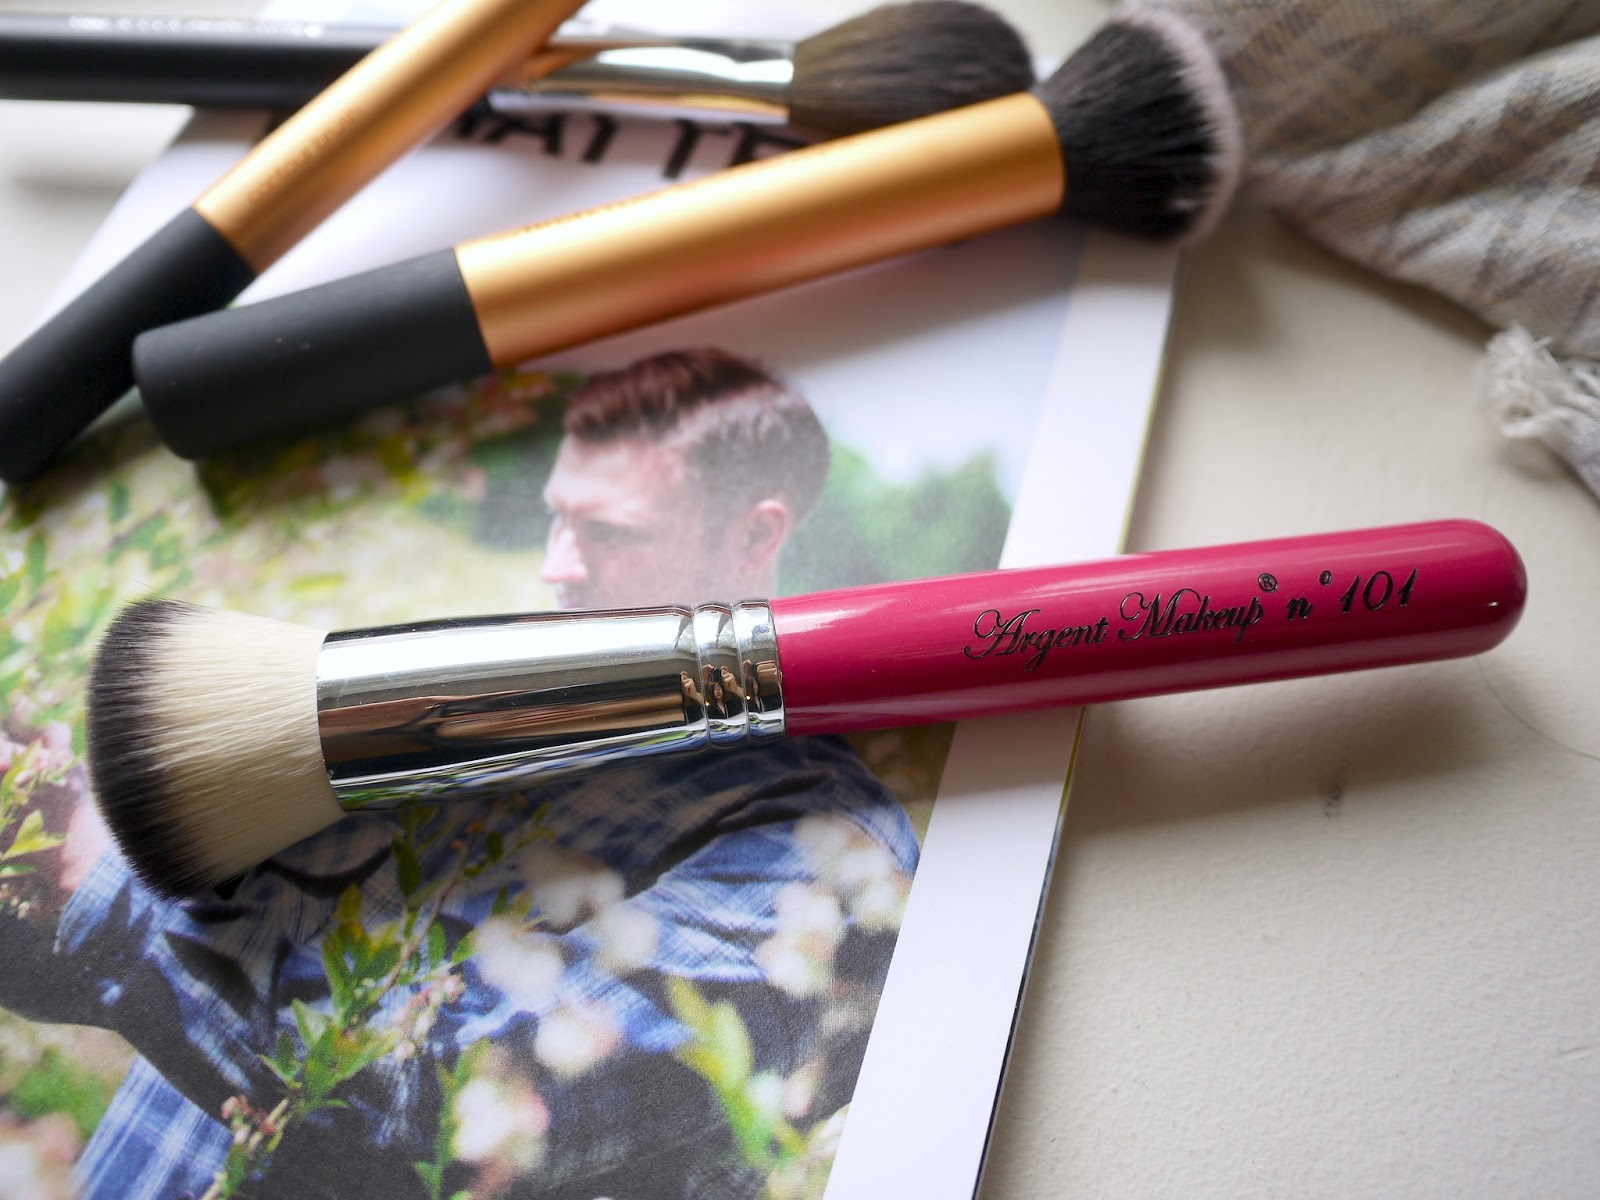 Argent Makeup Brush no.101 review